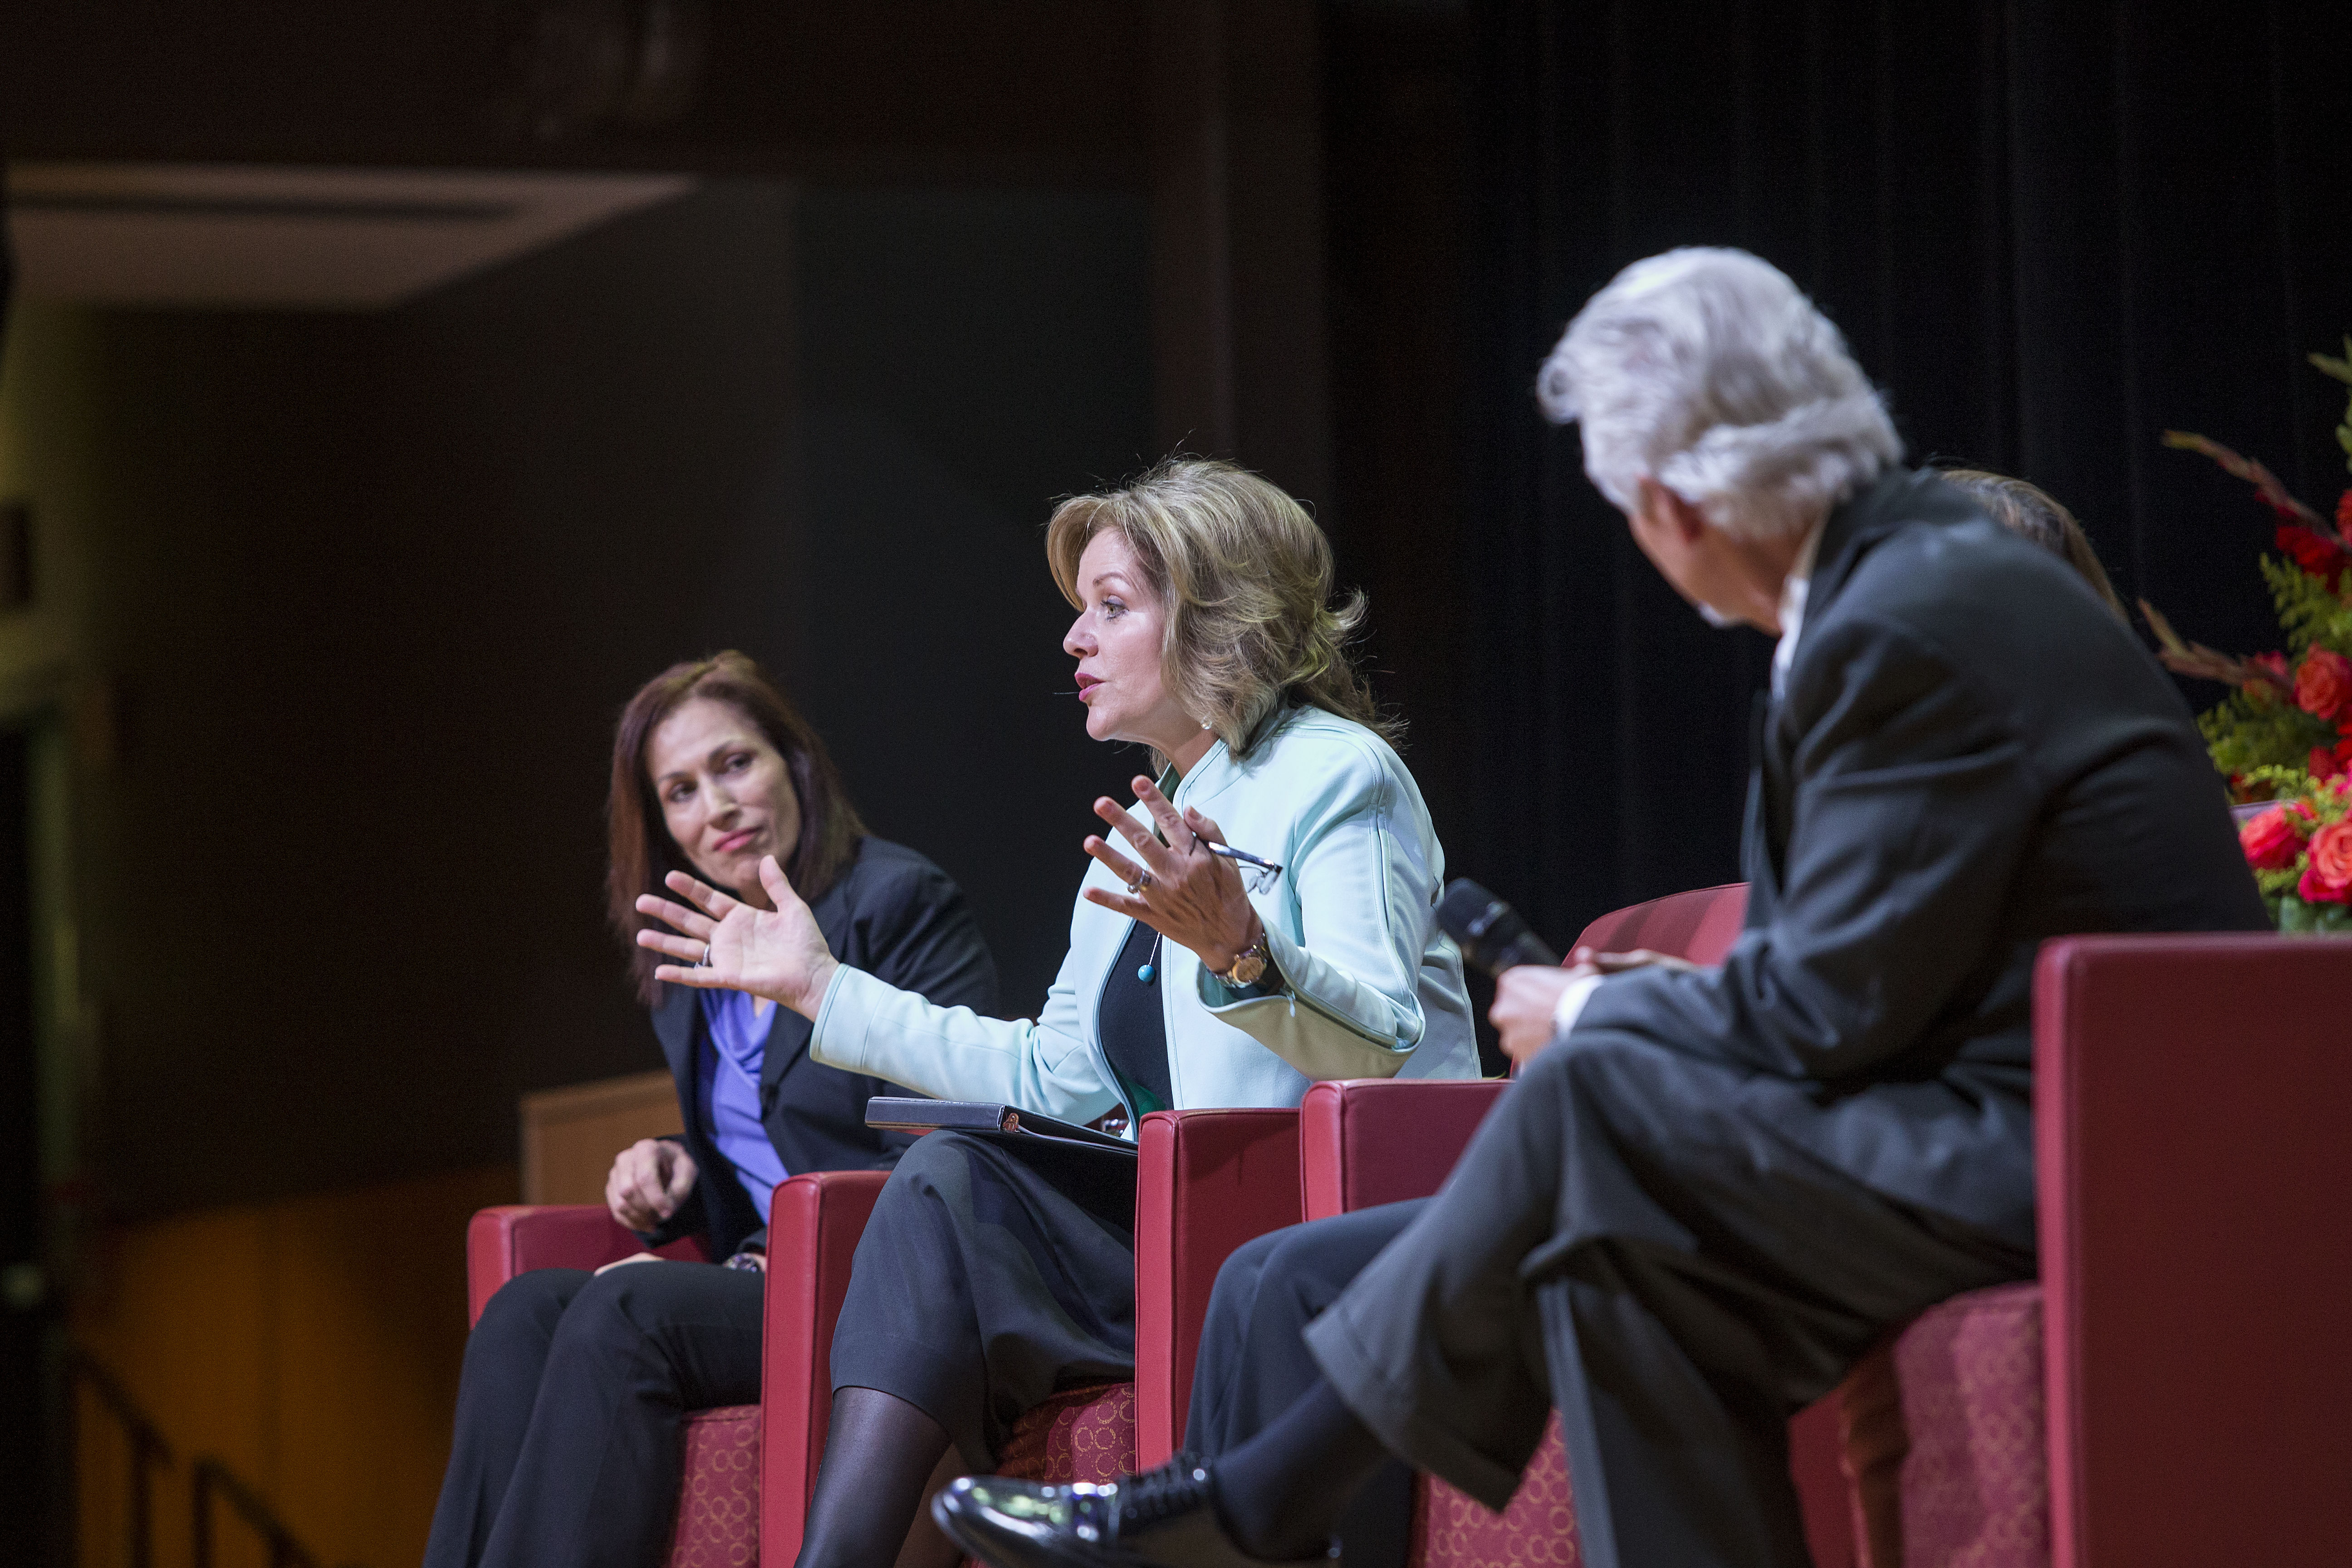 Rachelle Fleming and moderator Steve Kreinberg sit on stage with Reneé Fleming at the Temple Performing Arts Center.